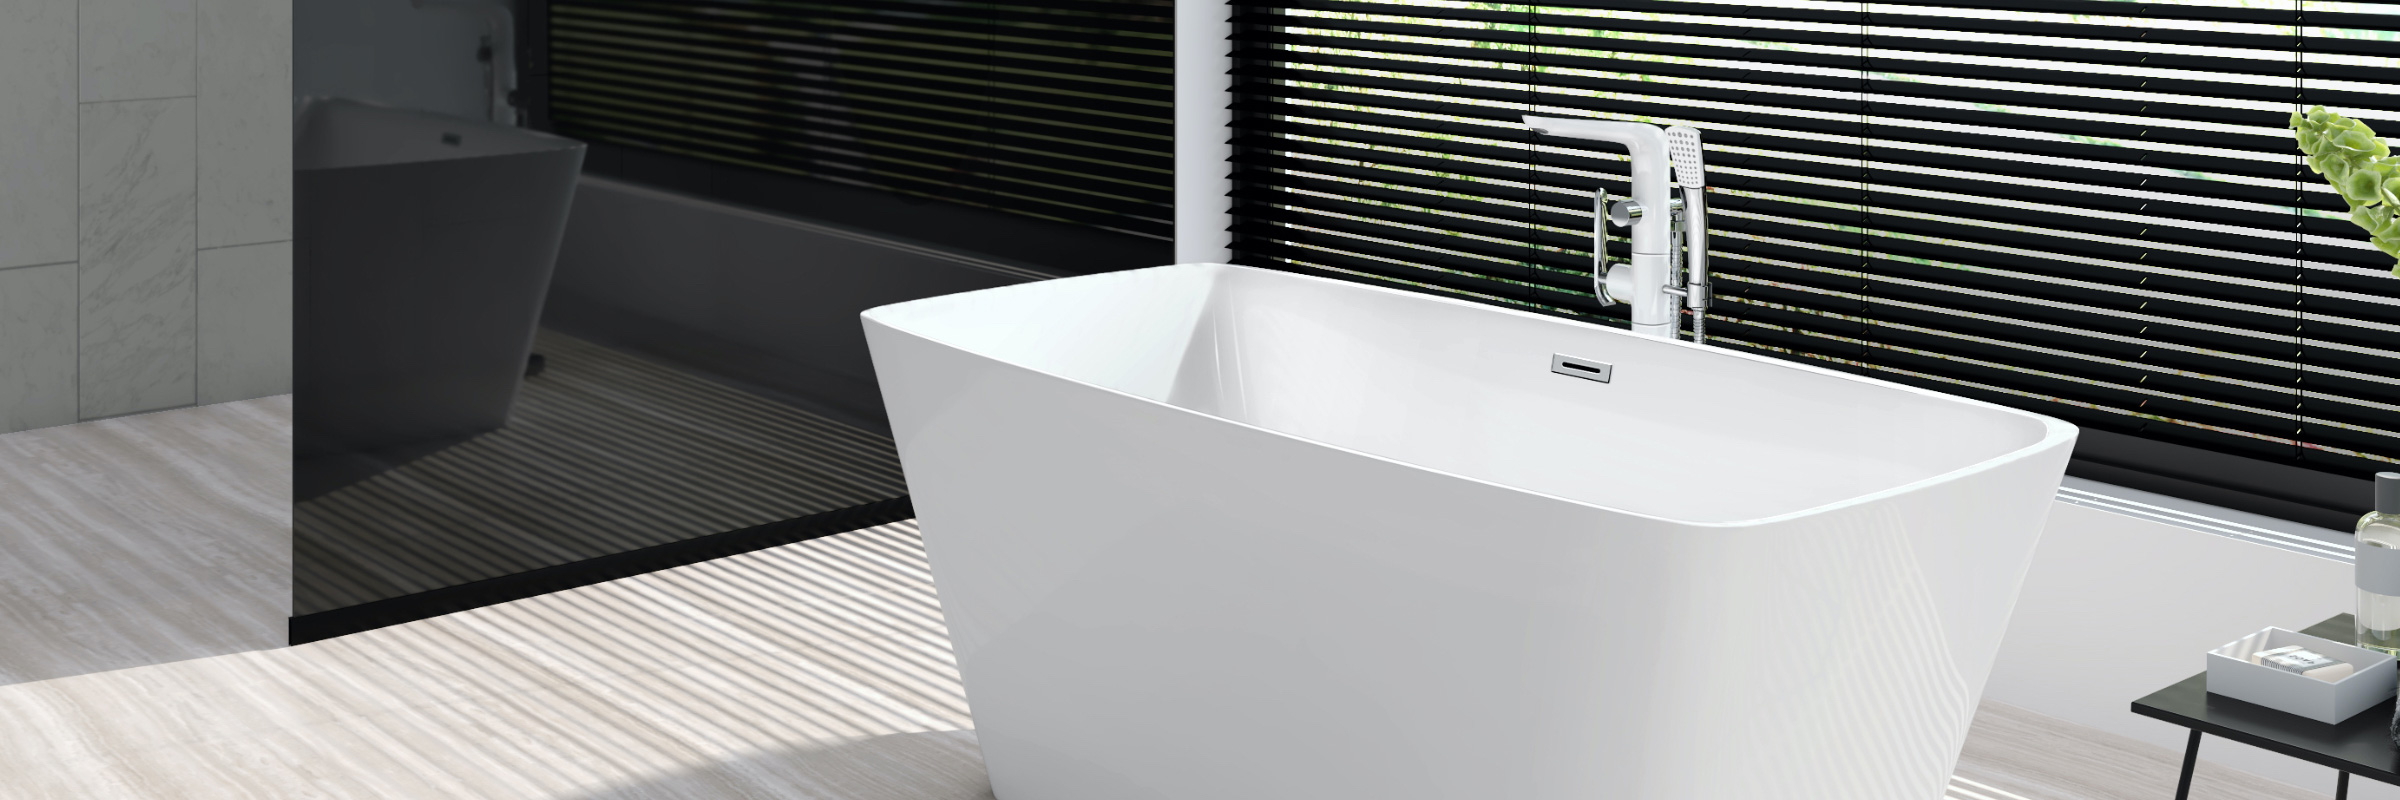 Freestanding Frederick York tub